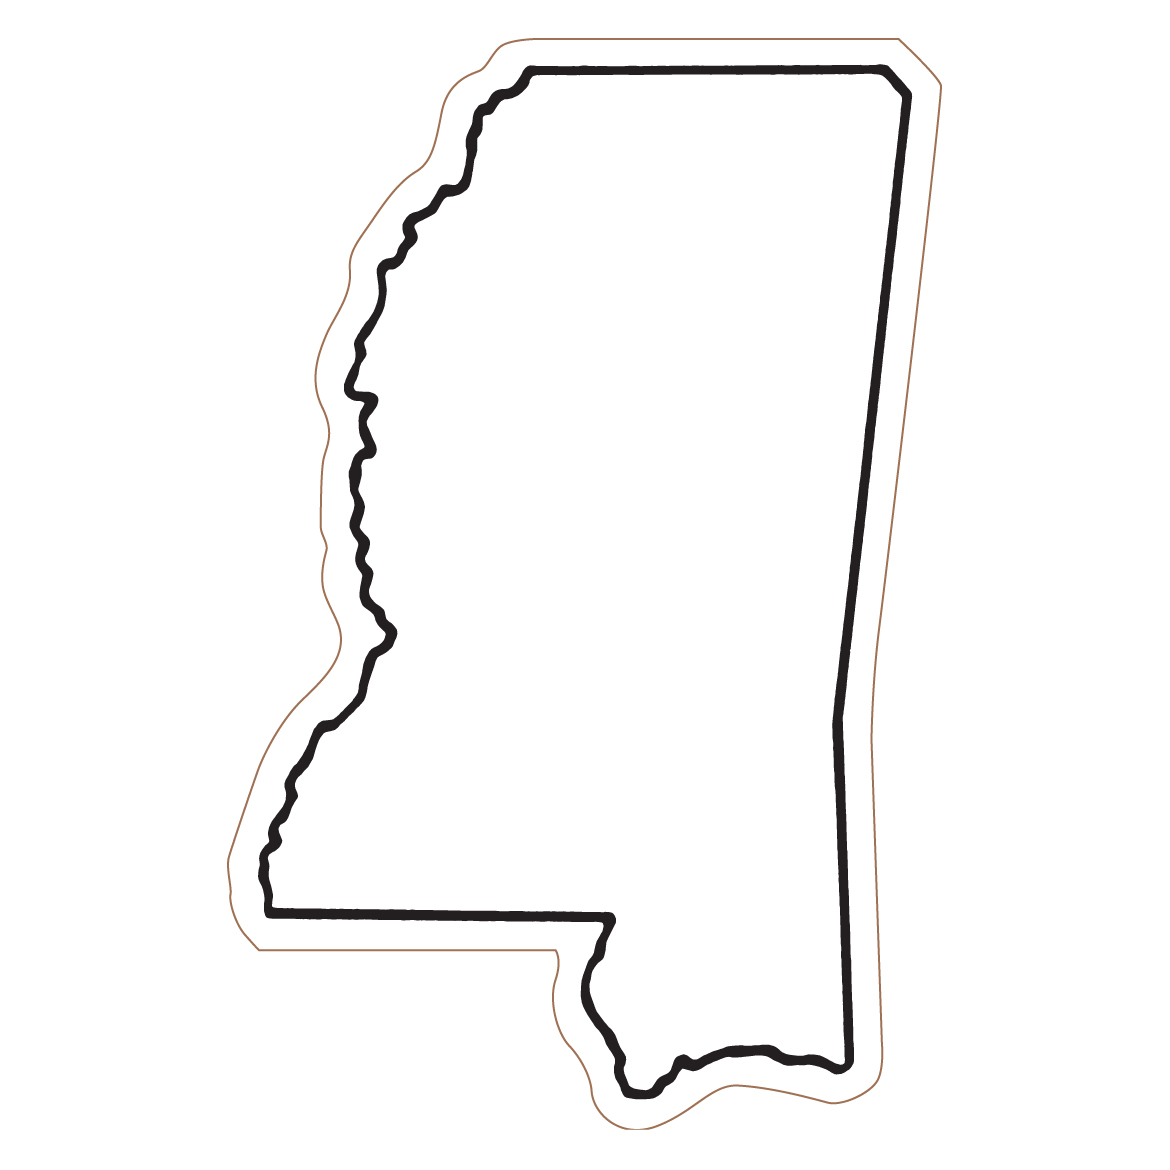 Mississippi Outline Clipart